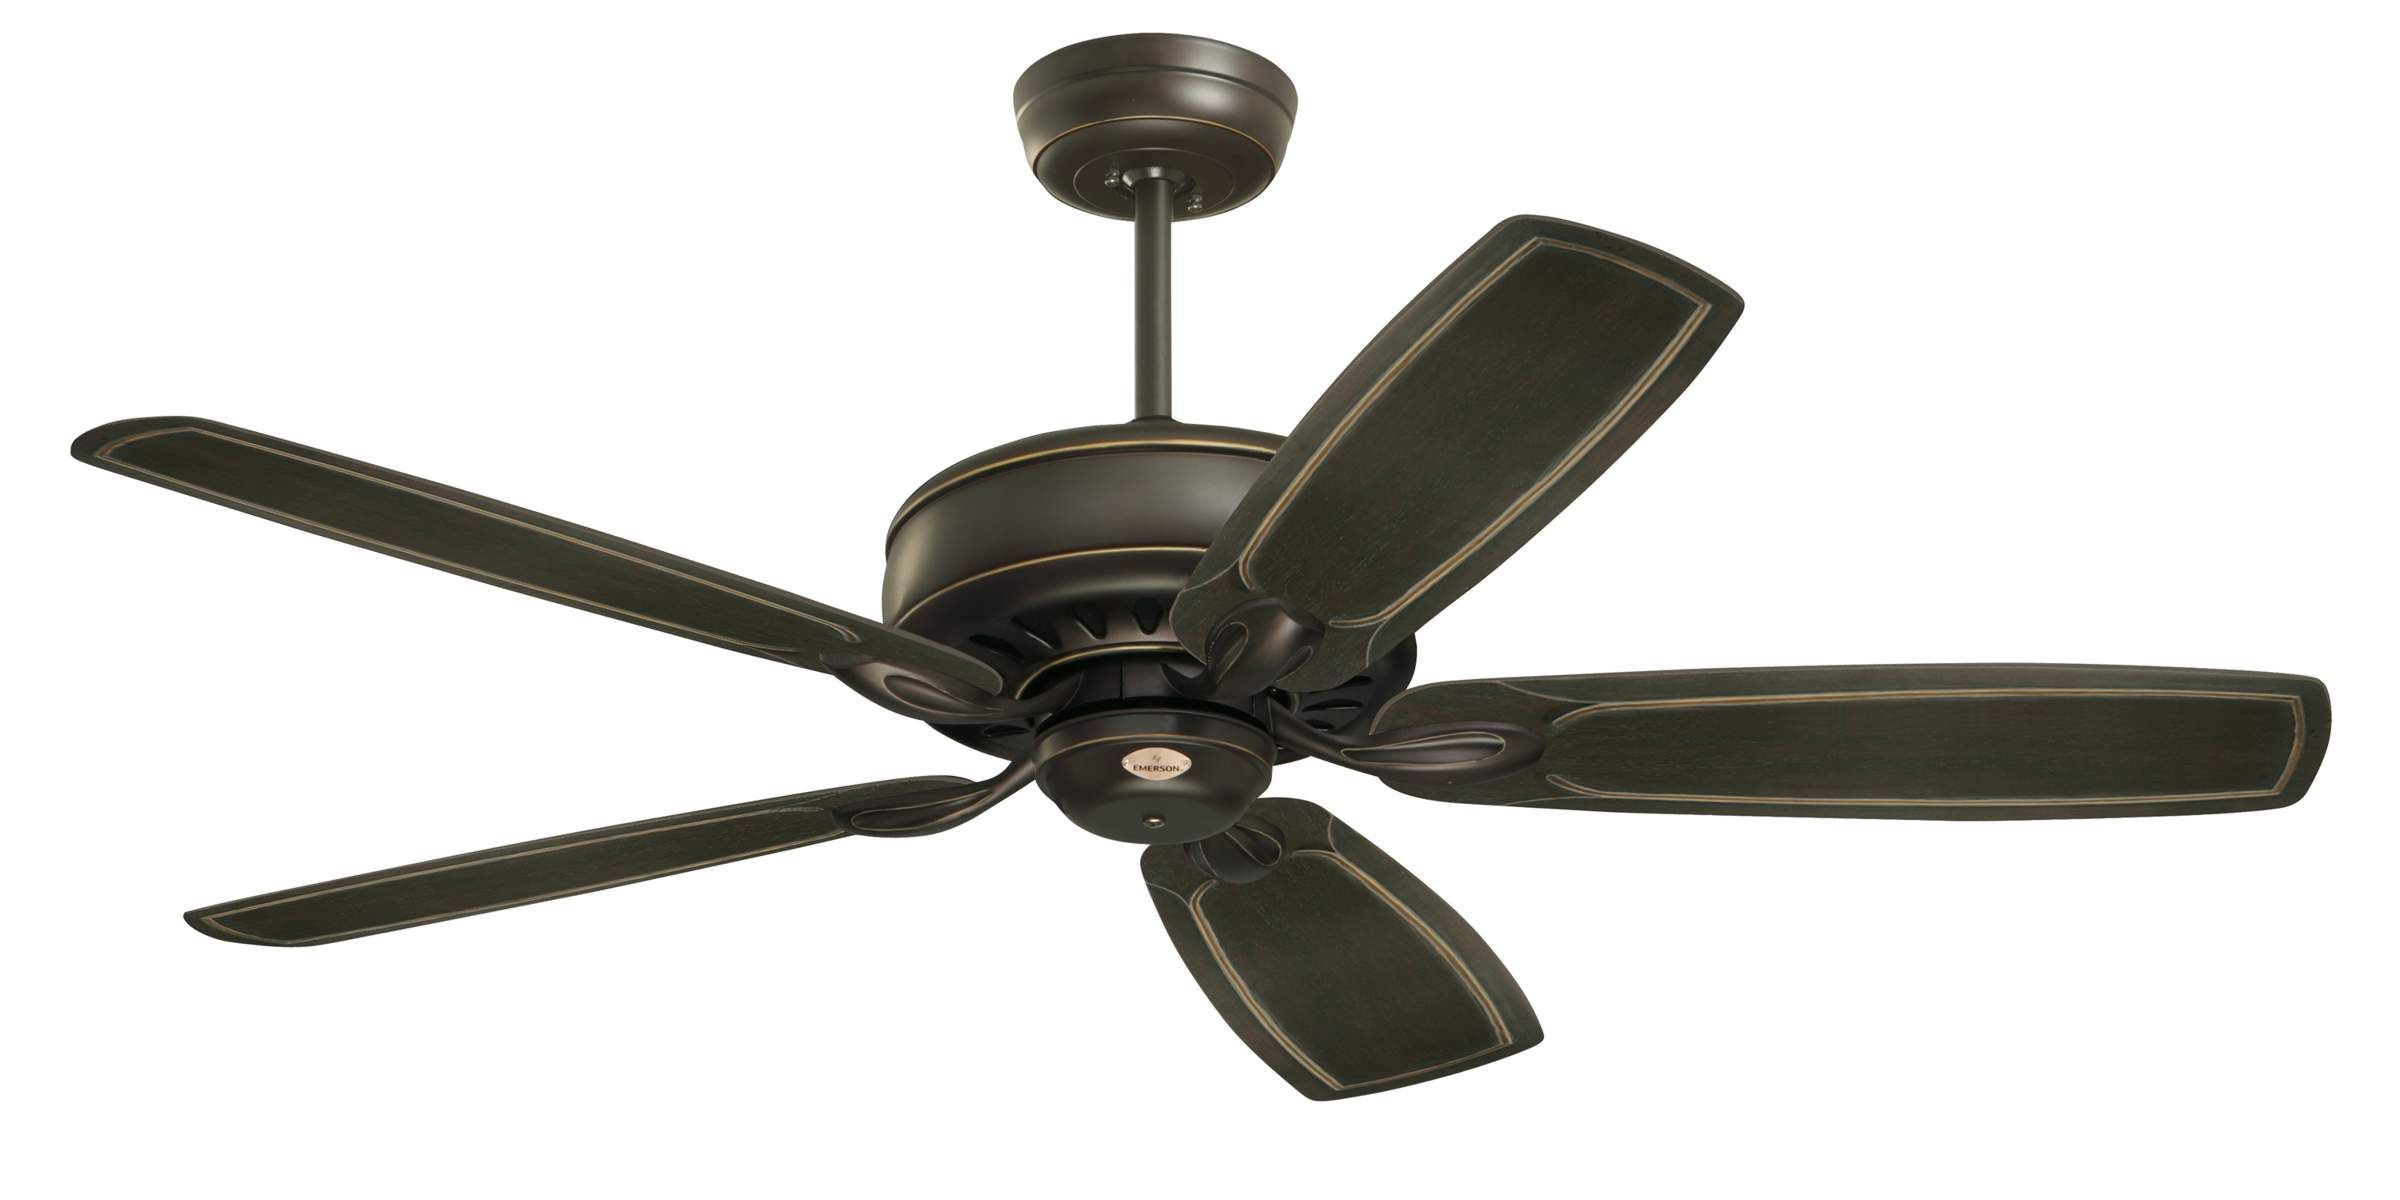 vintage in fans style elegant bring and cov charm accessories unique to of wayzata ceilings ceiling light remote amp fan with